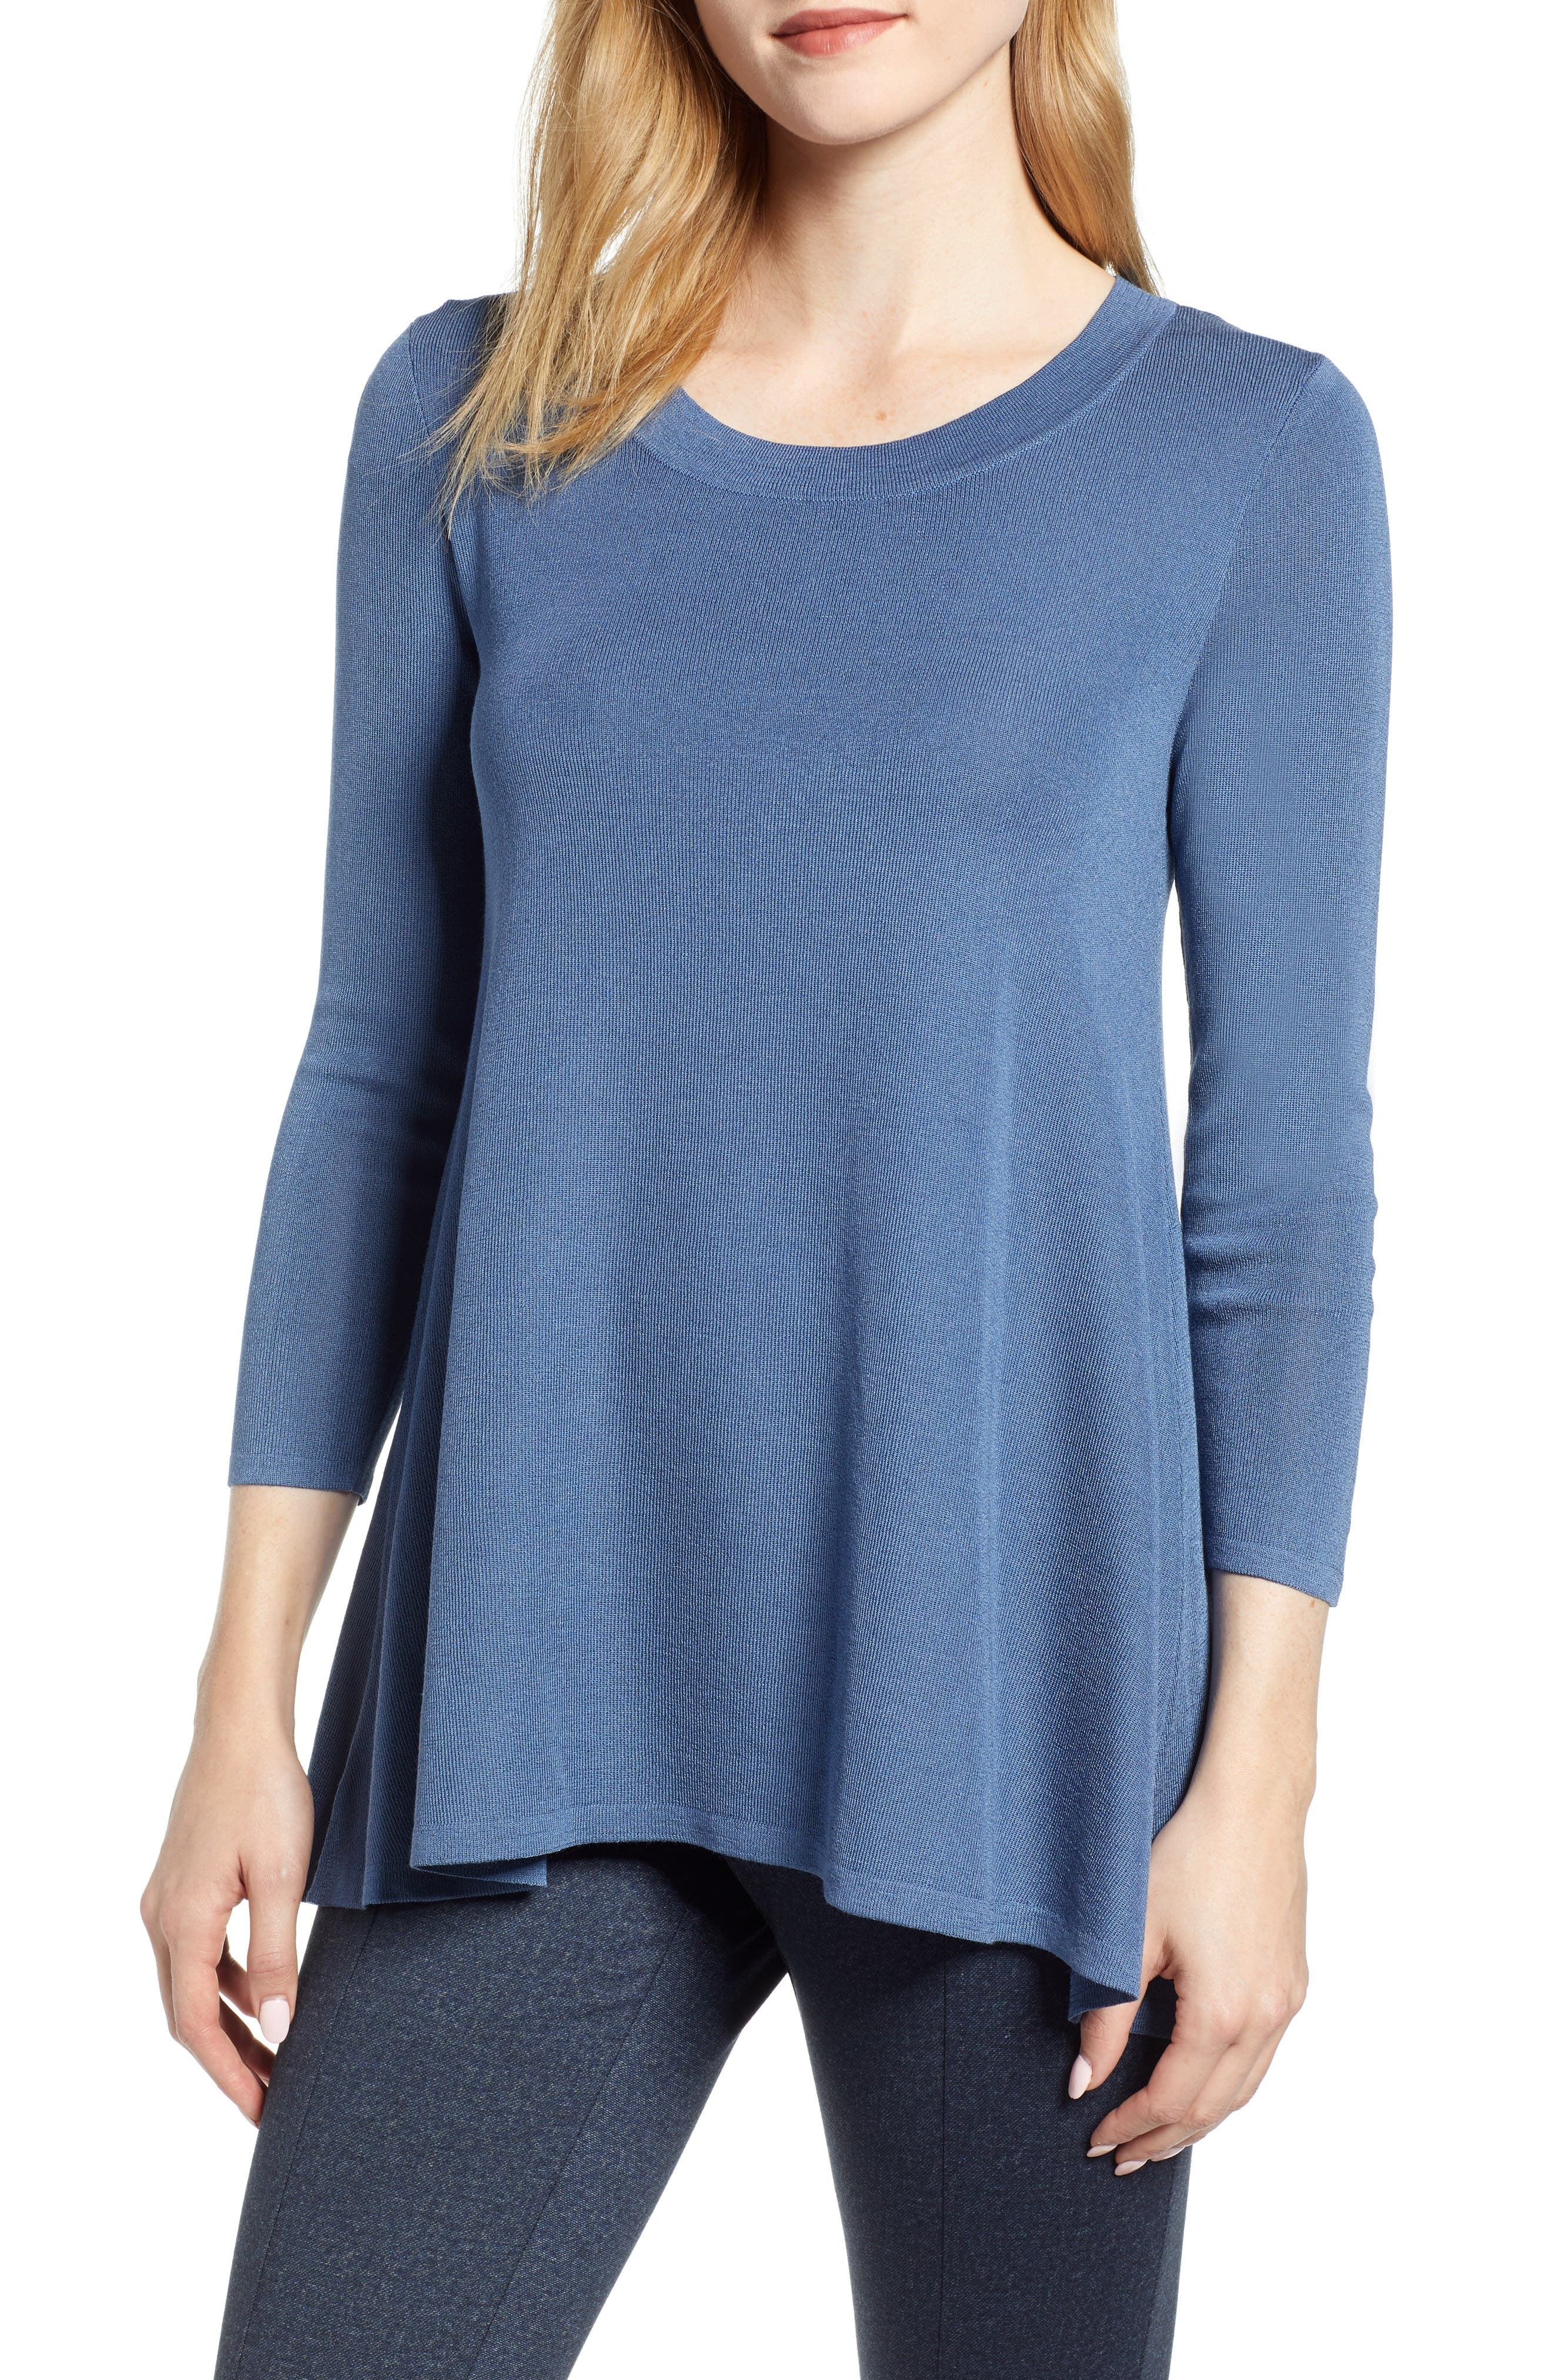 ANNE KLEIN Scoop Neck Knit Top in Versailles